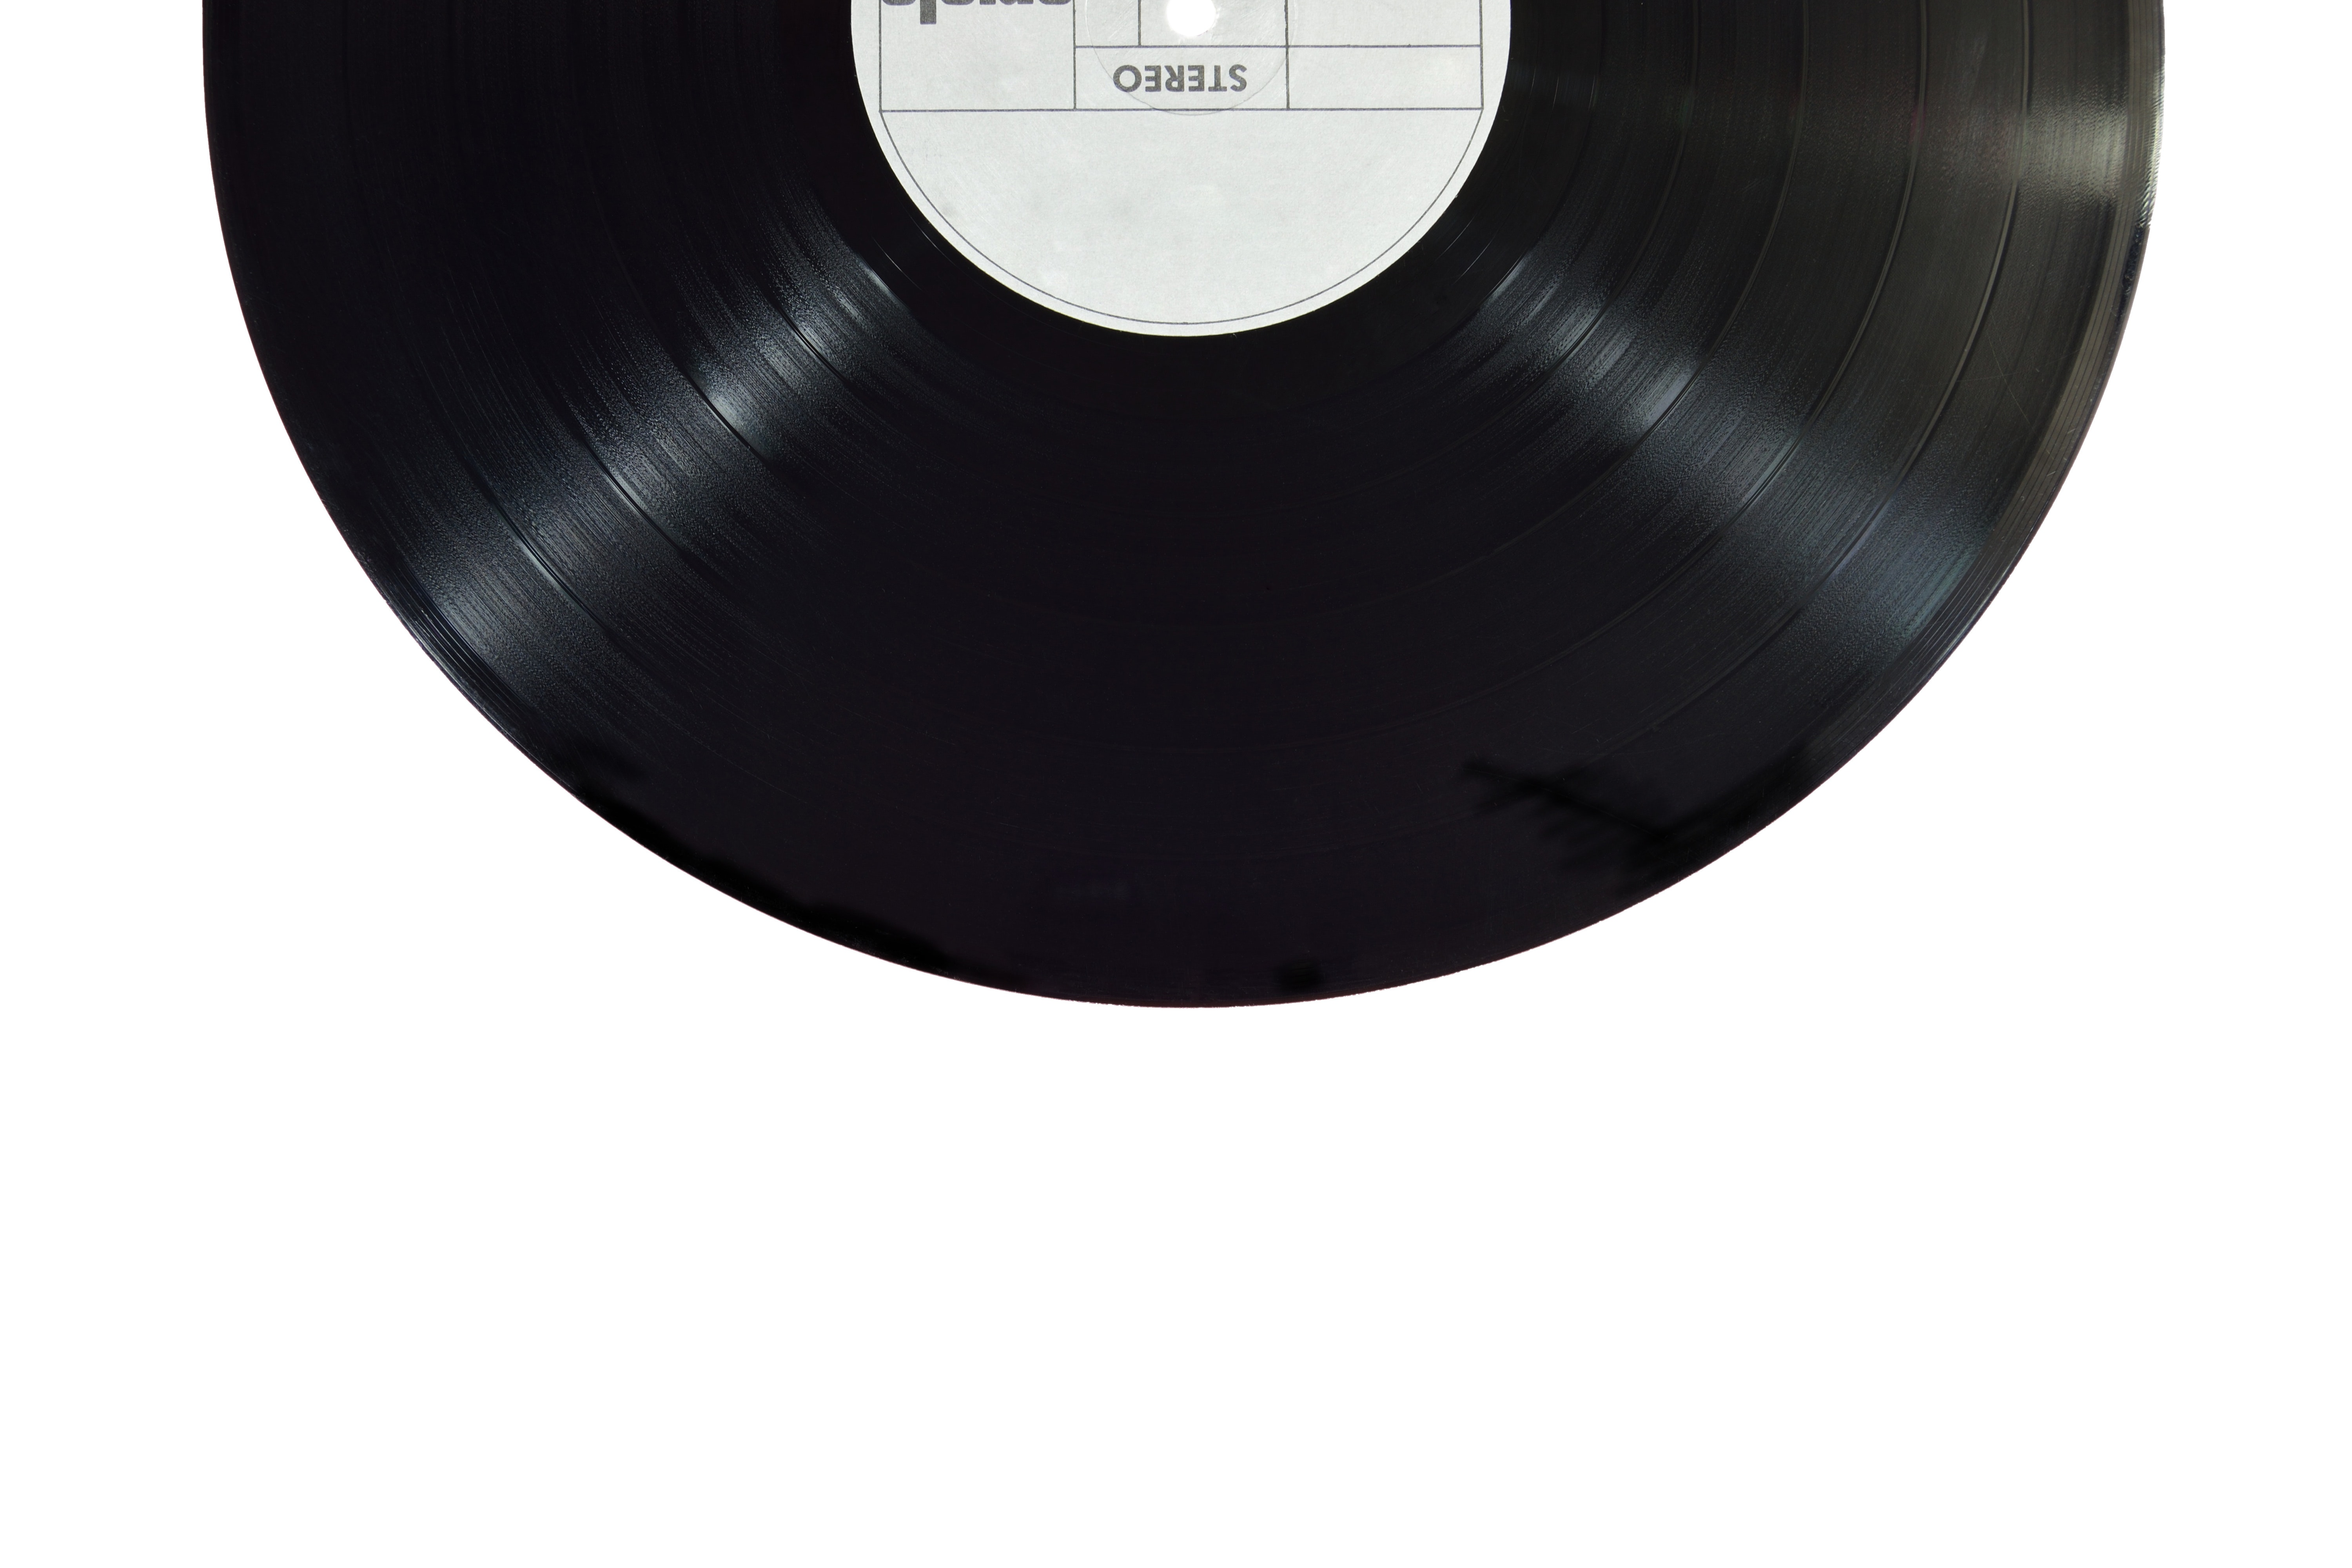 Black and white photograph of a music record